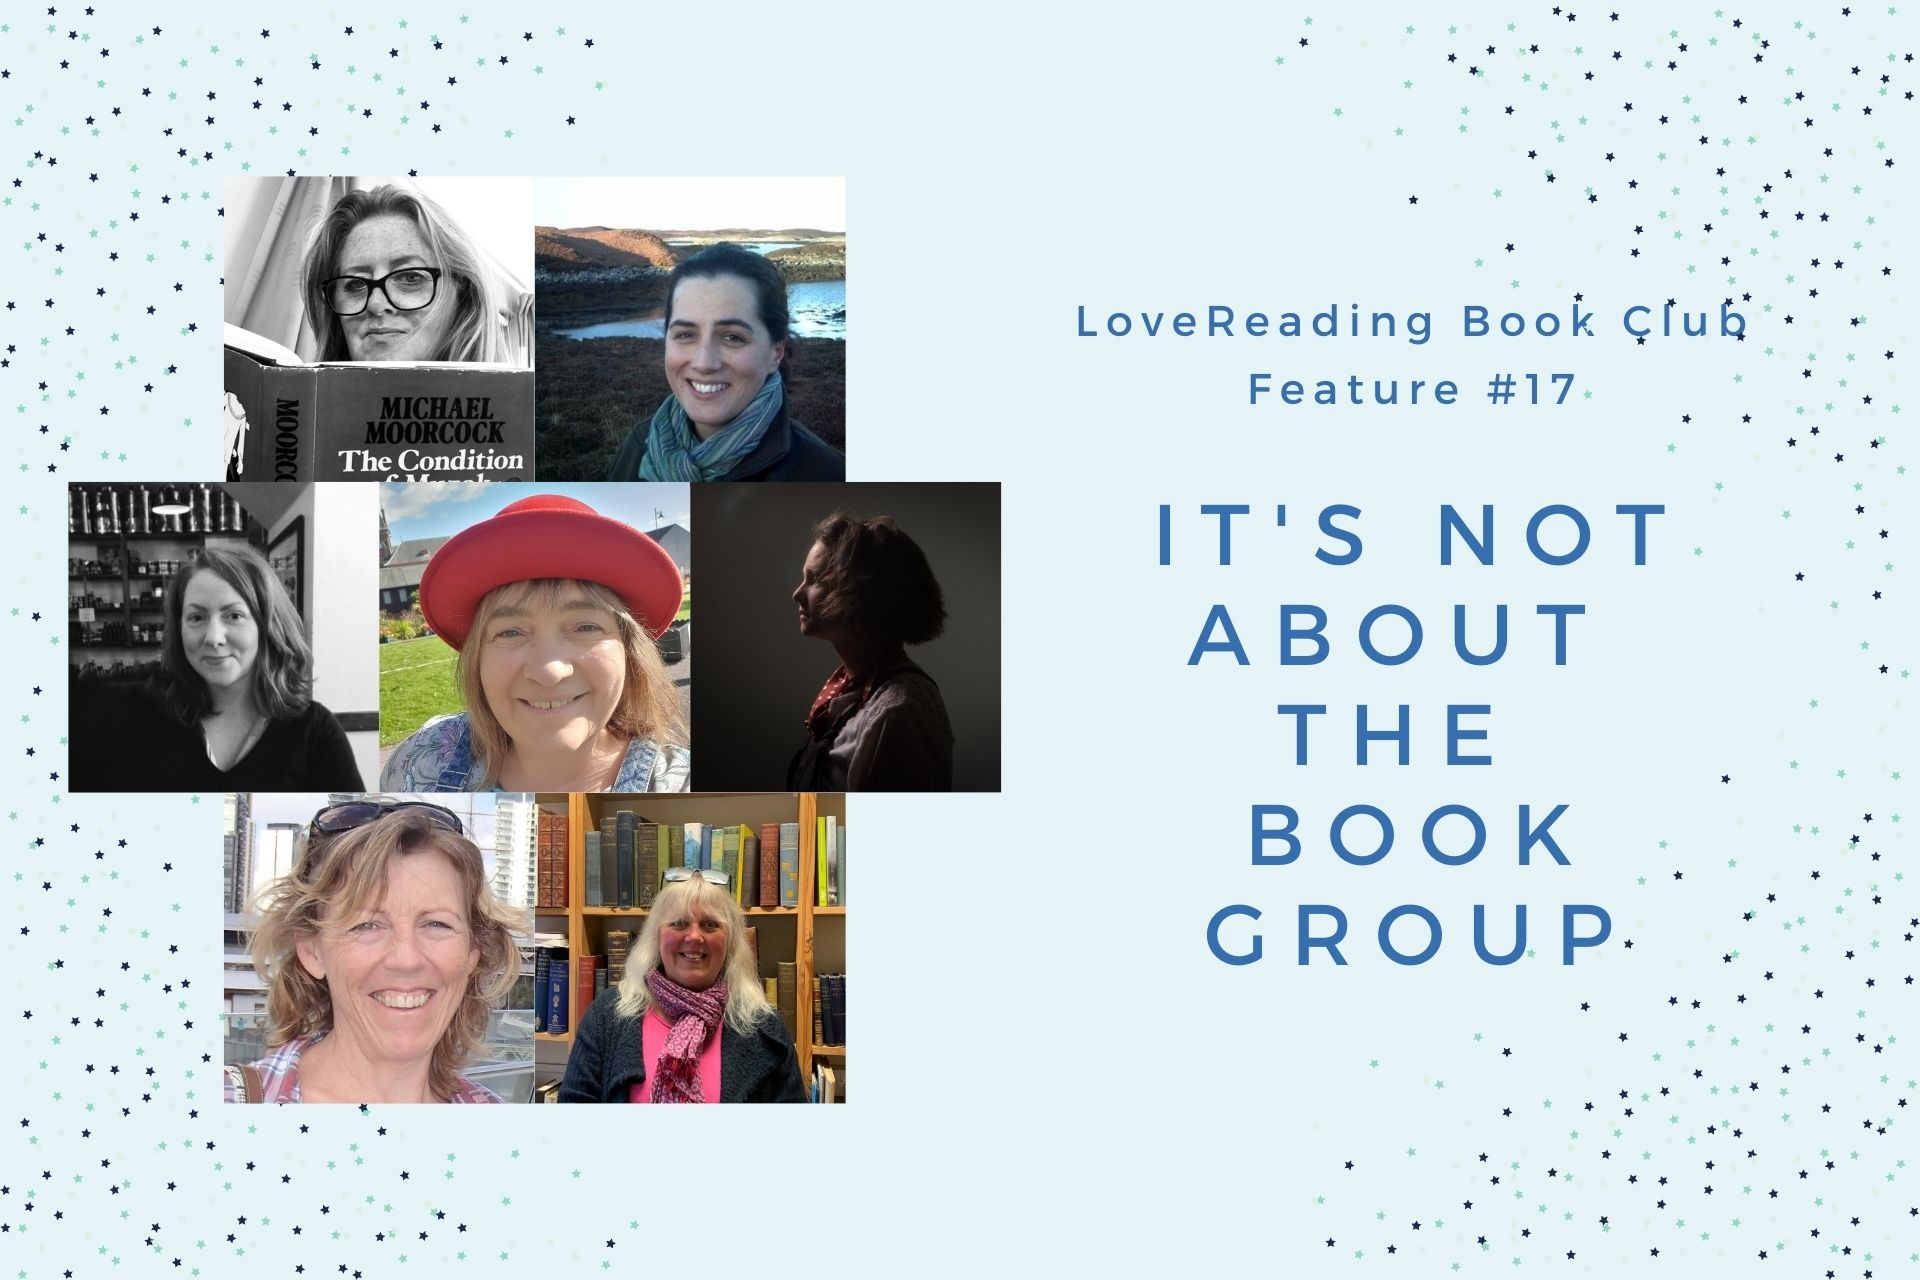 LoveReading Book Club Feature #17: It's Not About The Book Group